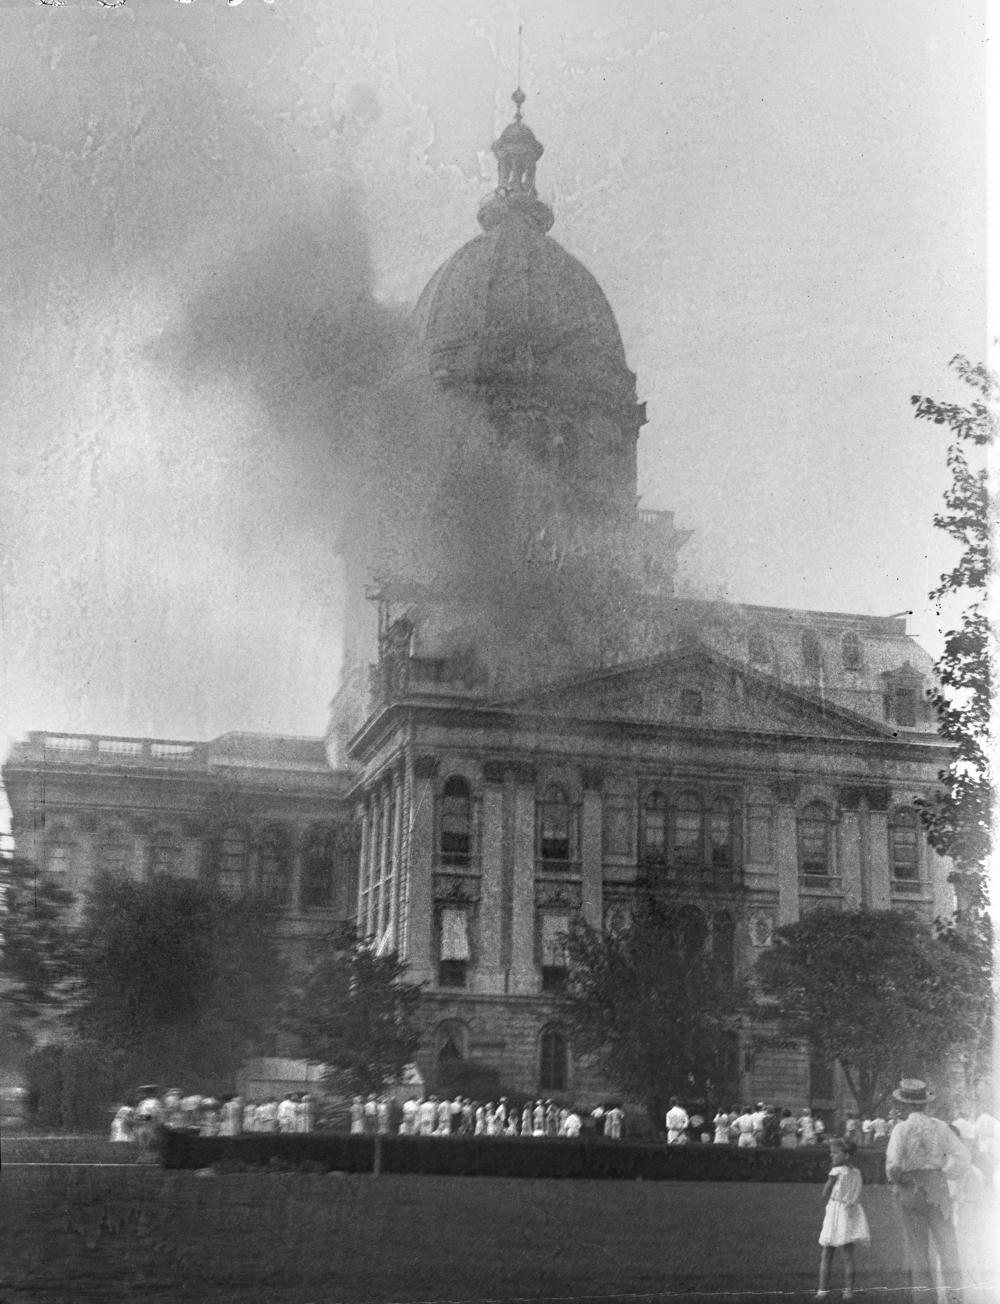 Thousands of spectators were drawn to the south lawn of the state Capitol grounds when fire broke out on Sunday July 9, 1933. File photos/The State Journal-Register